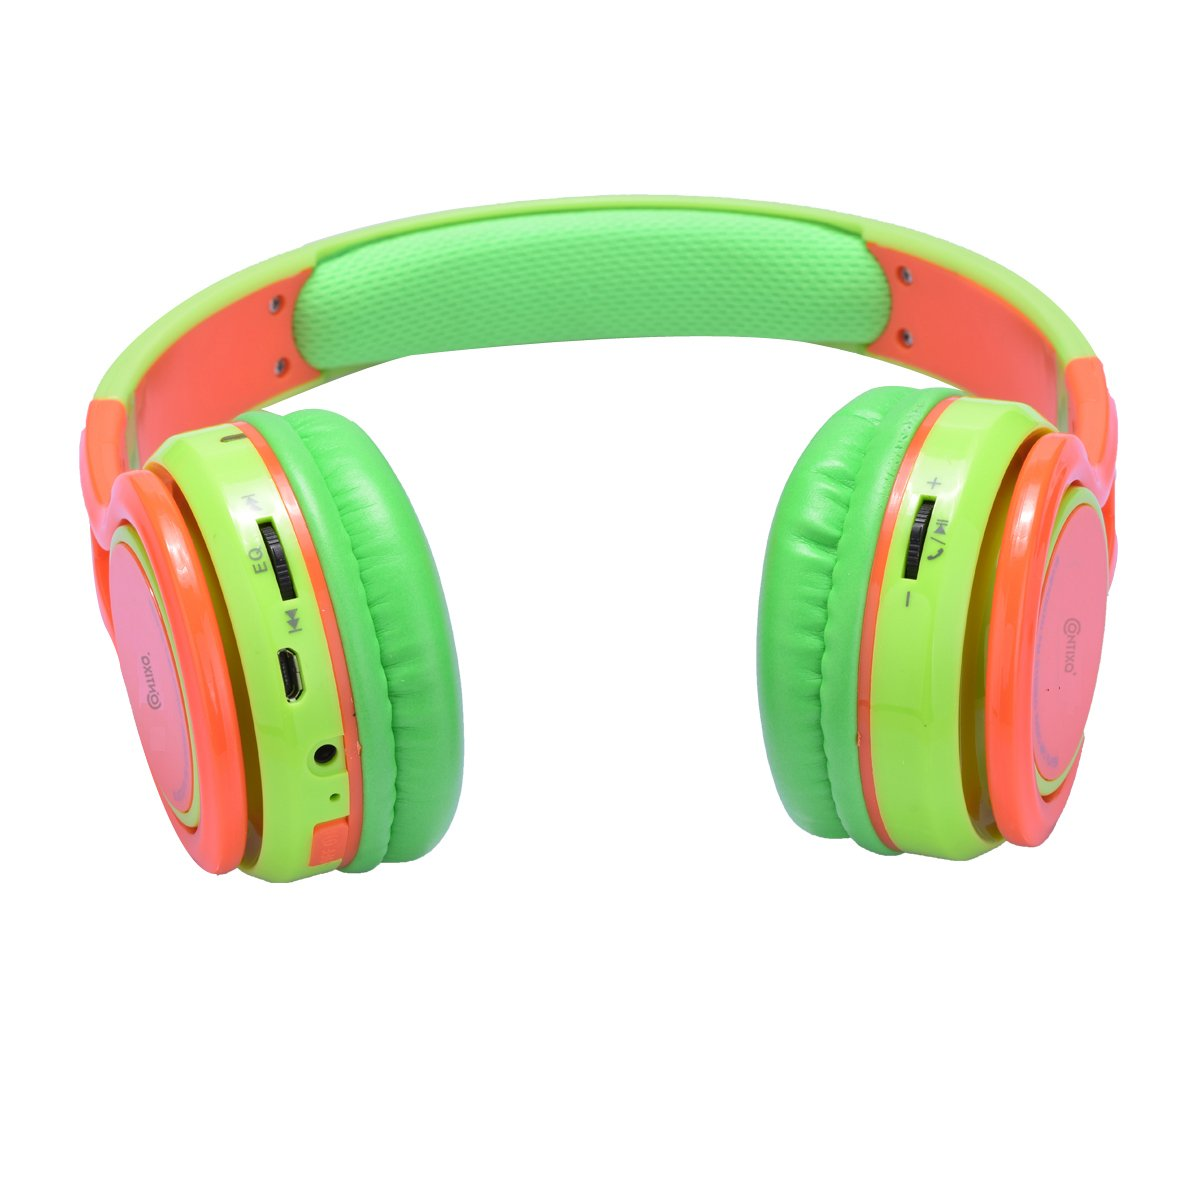 ... Wireless Bluetooth Headphone Built-in Microphone, Micro SD Card Music Player, FM Stereo Radio (Green w/Orange) - Best Gift: Home Audio & Theater